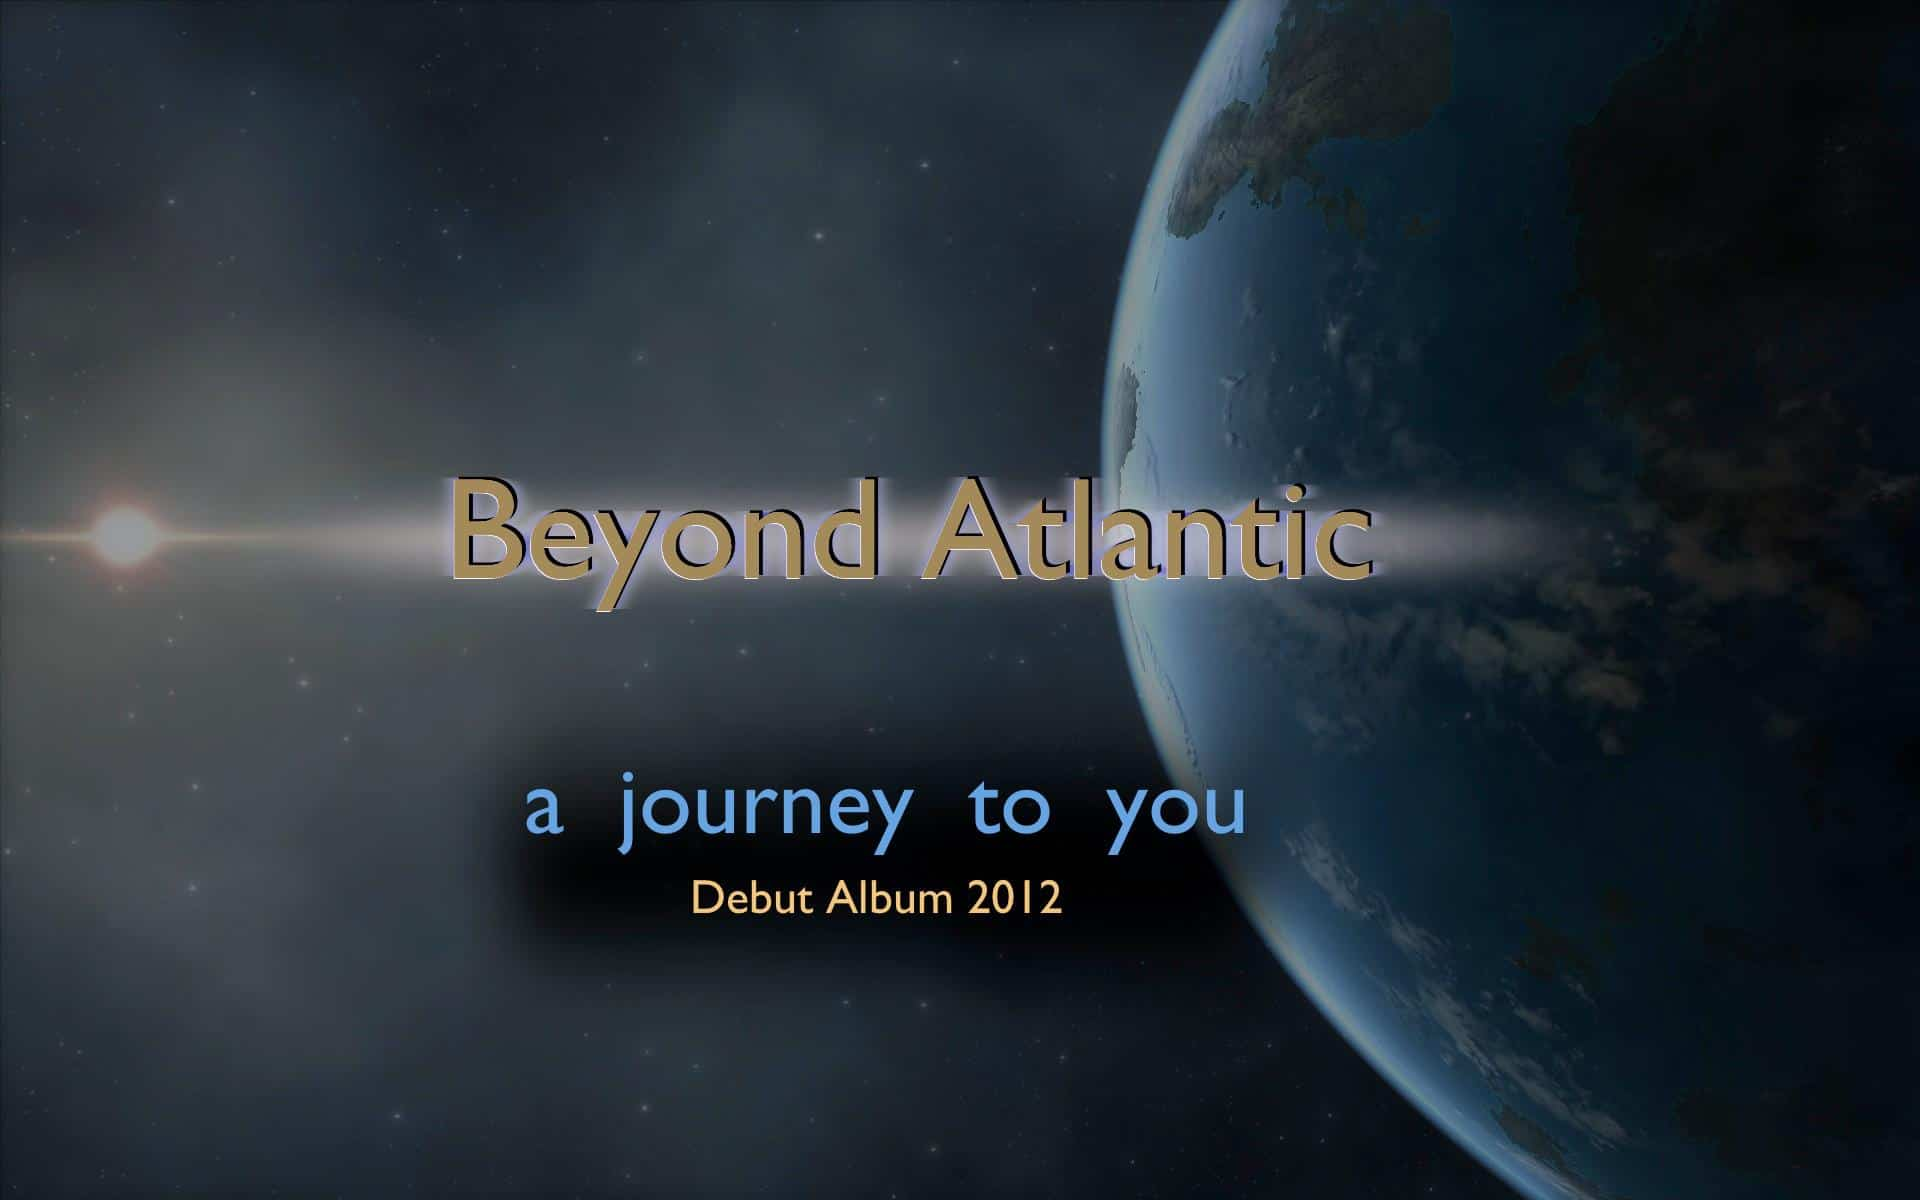 Beyond Atlantic